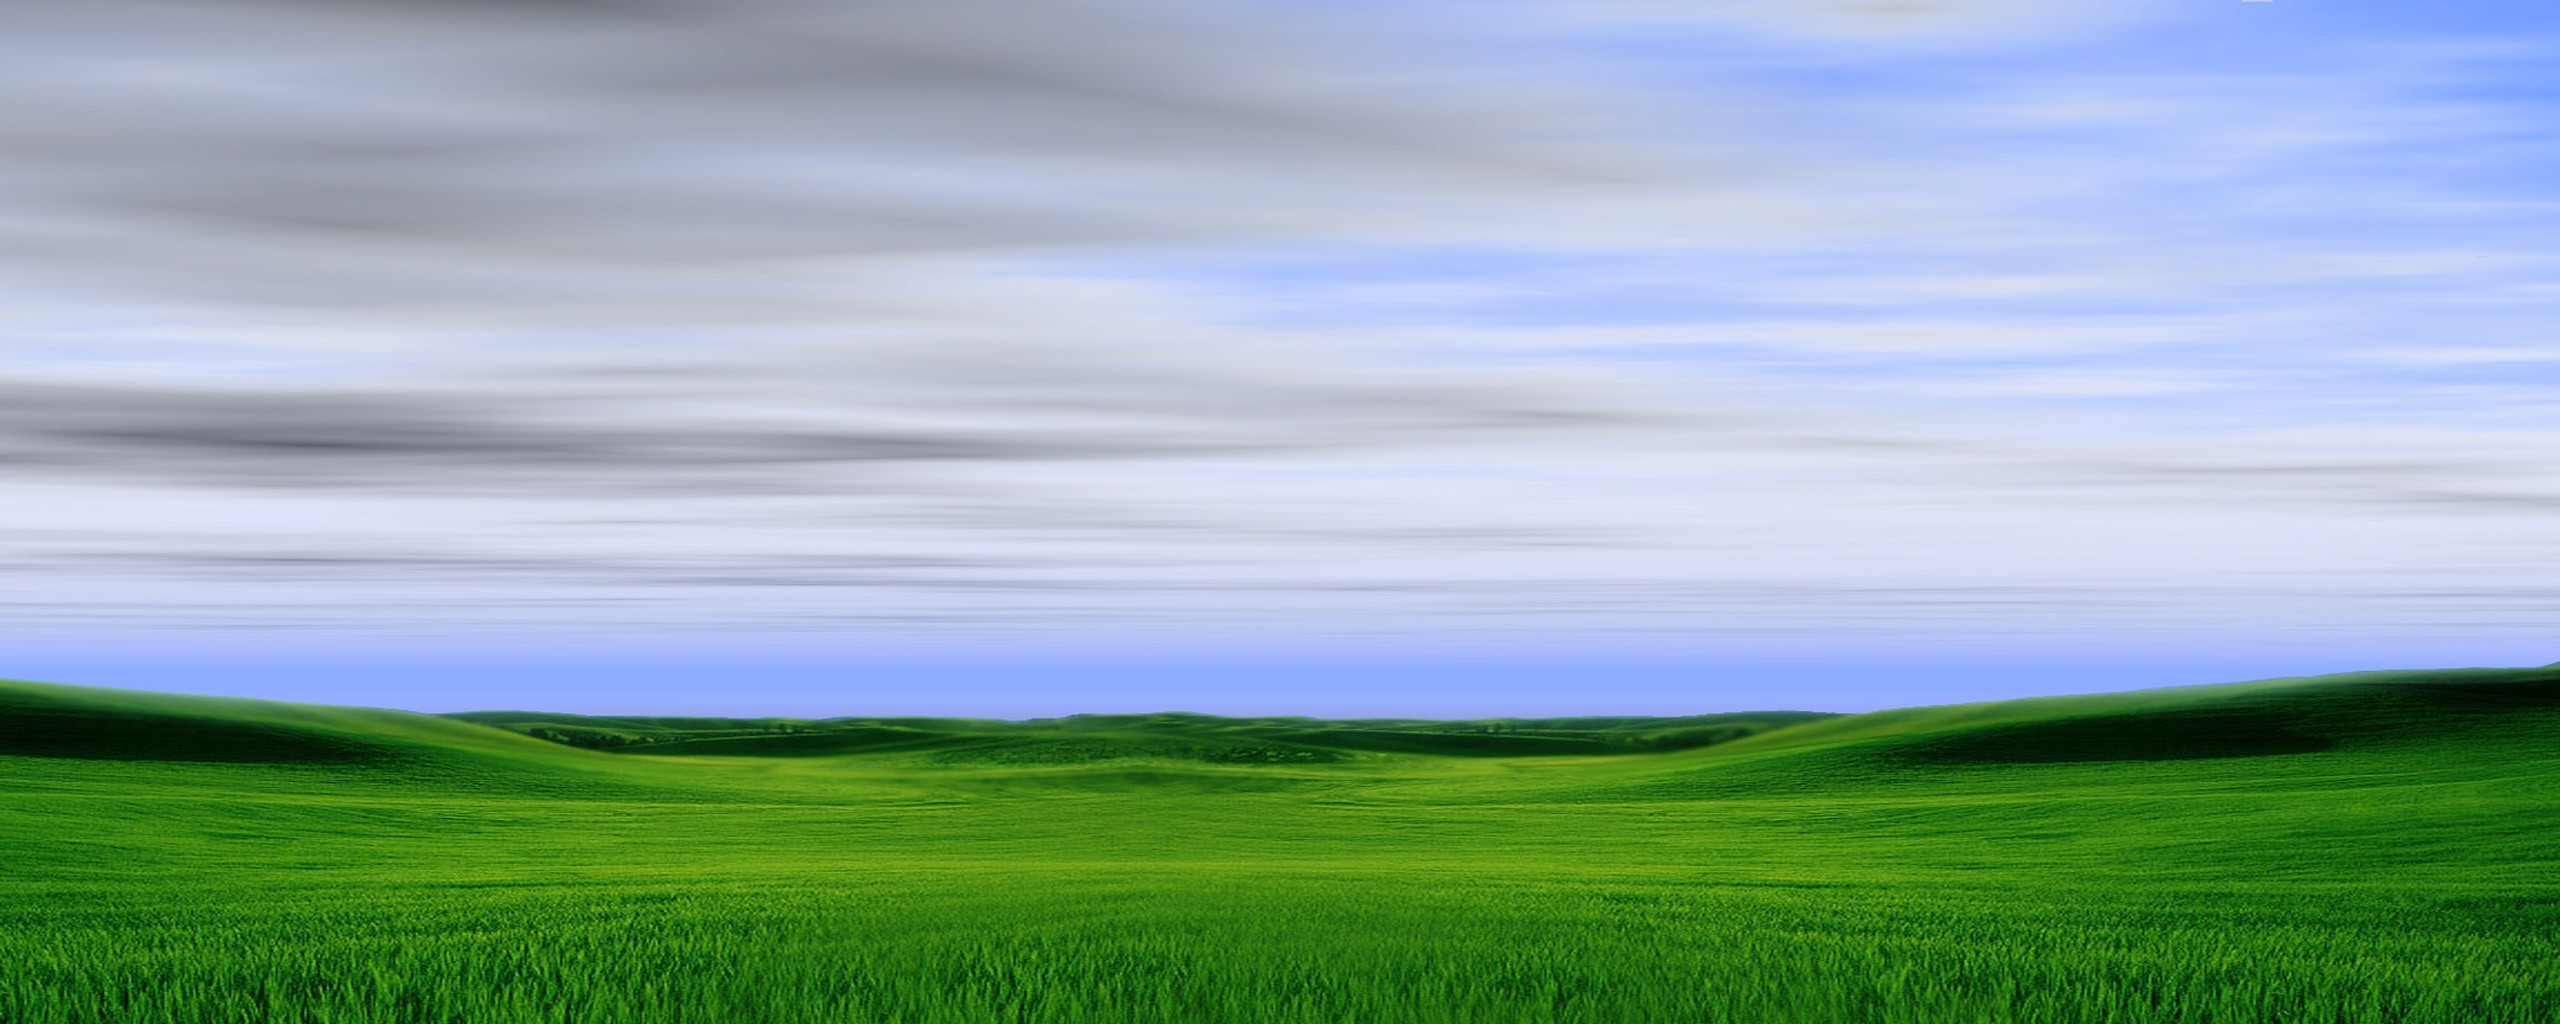 clouds Landscapes windows xp HD Wallpaper